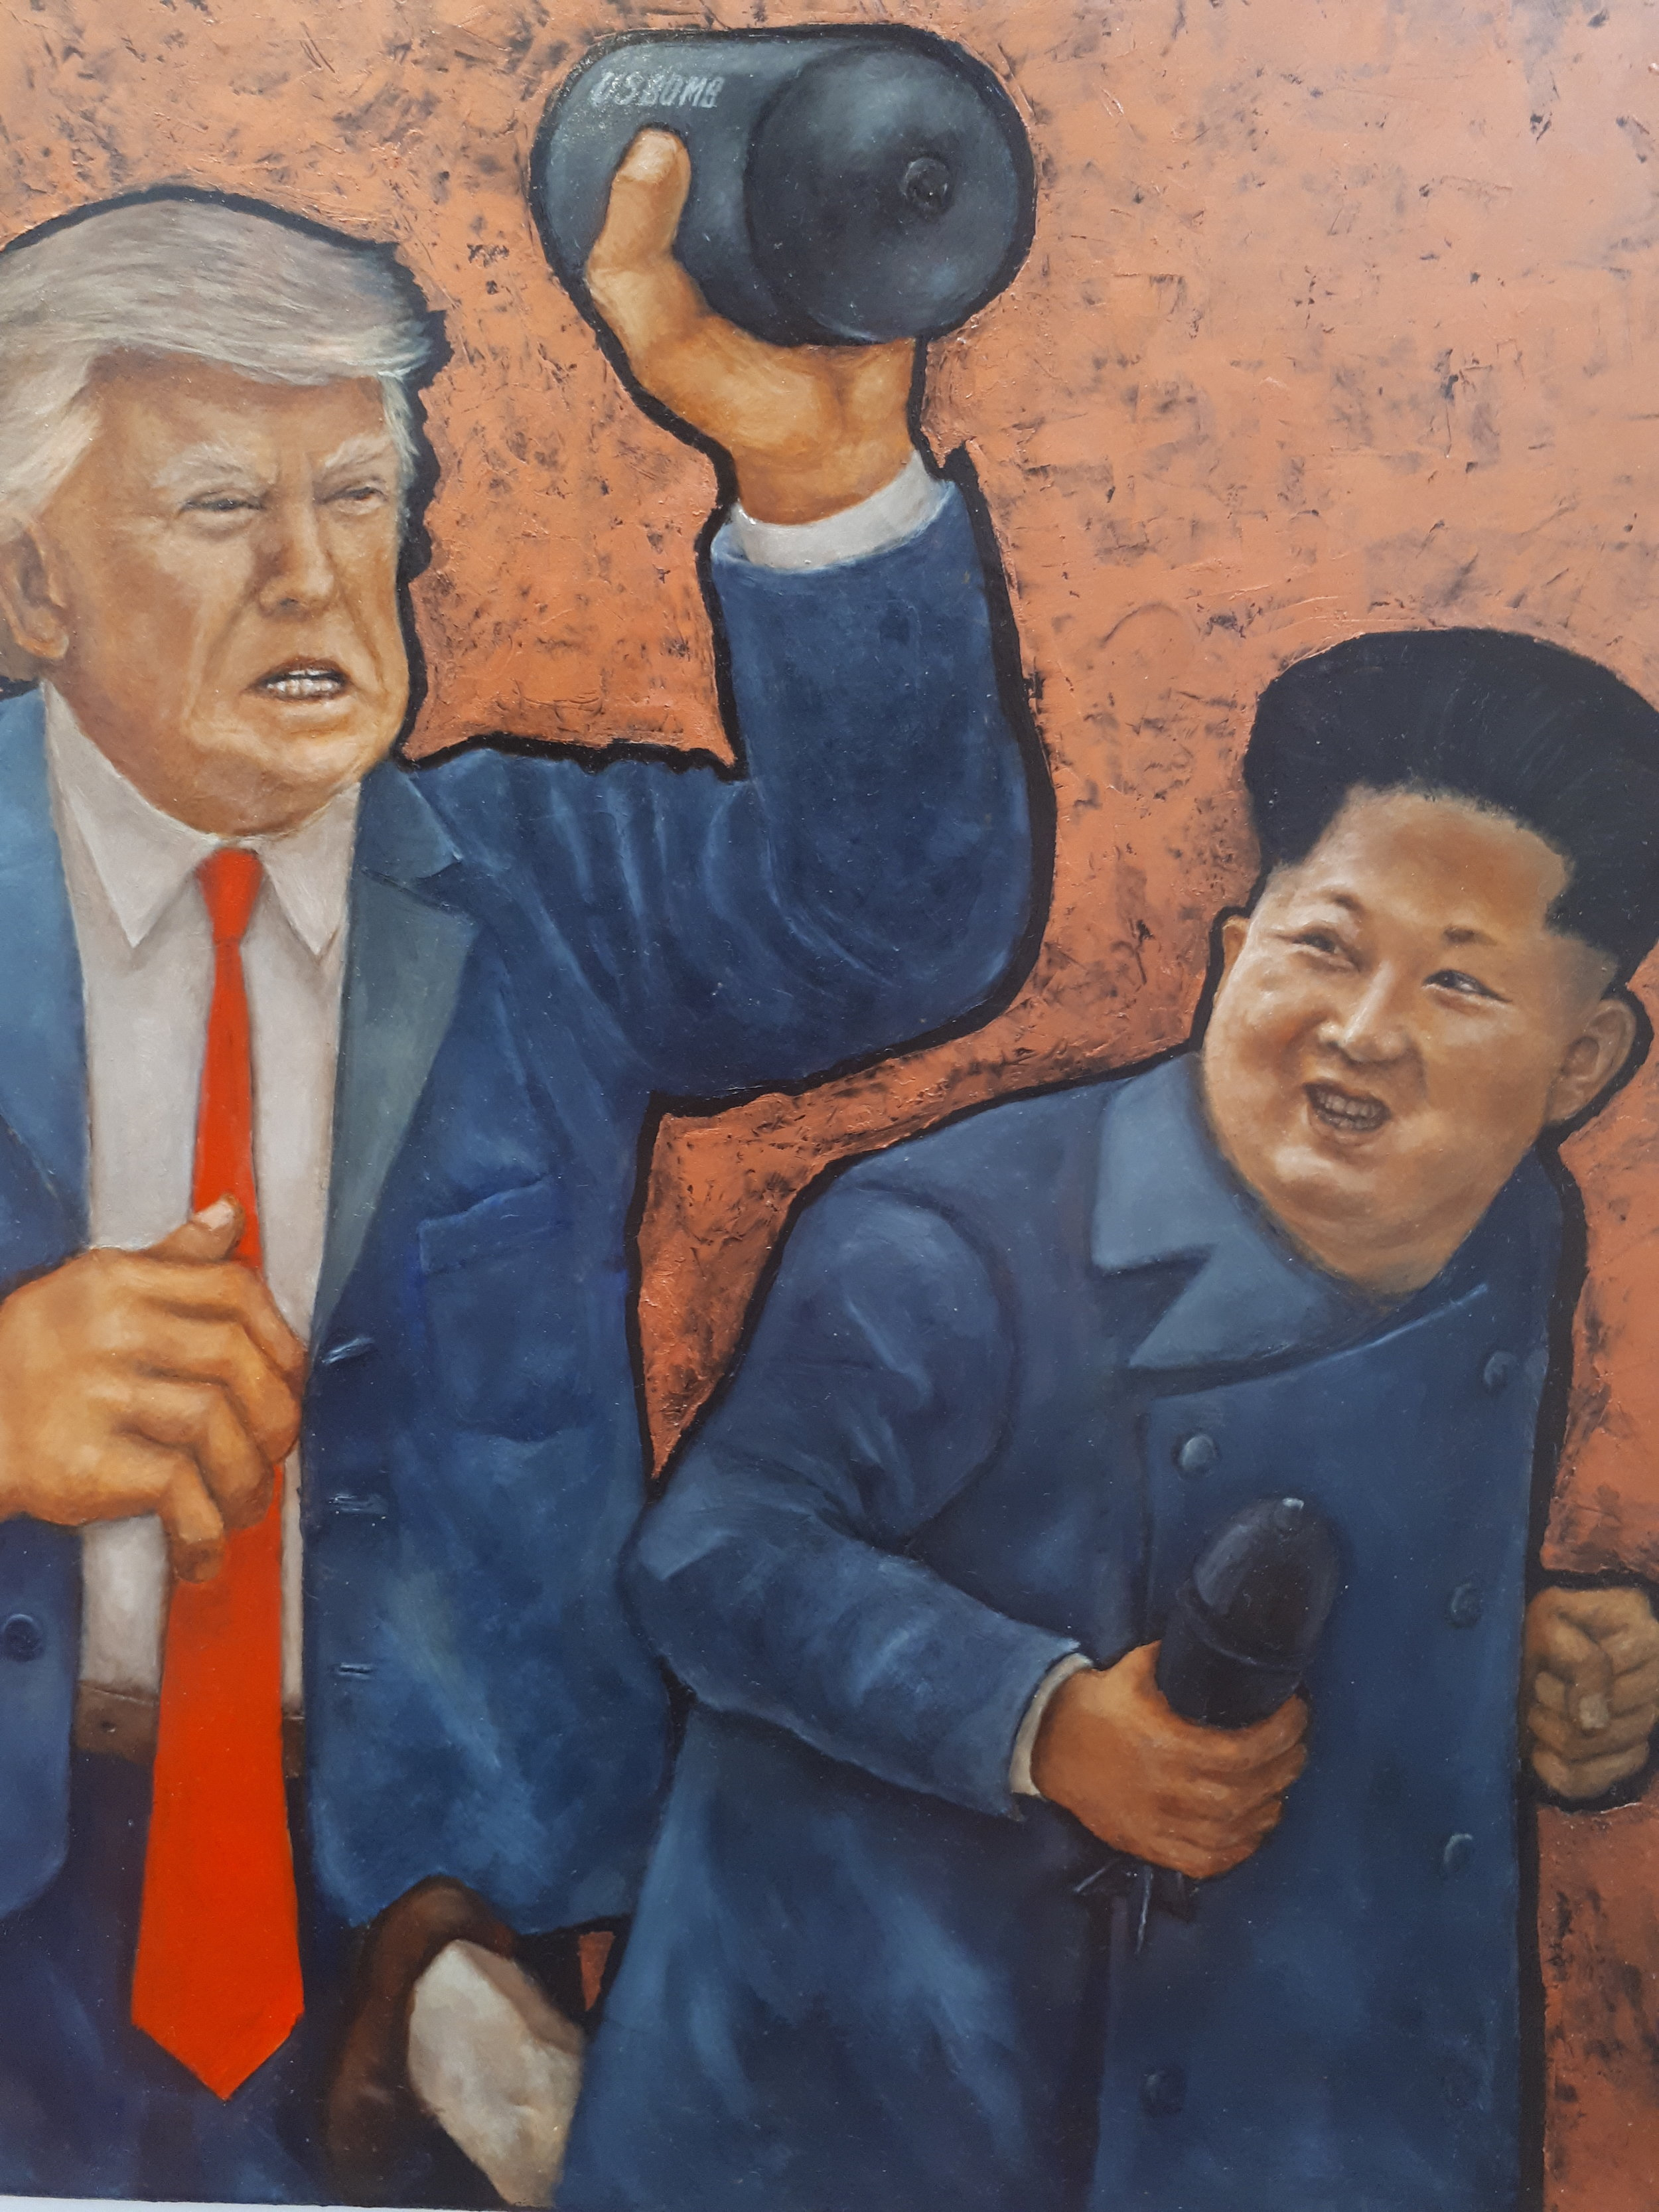 Nunzio Capece - Trump and Kim - will be presented in May at AFFORDABLE ART FAIR LONDON HAMPSTEAD